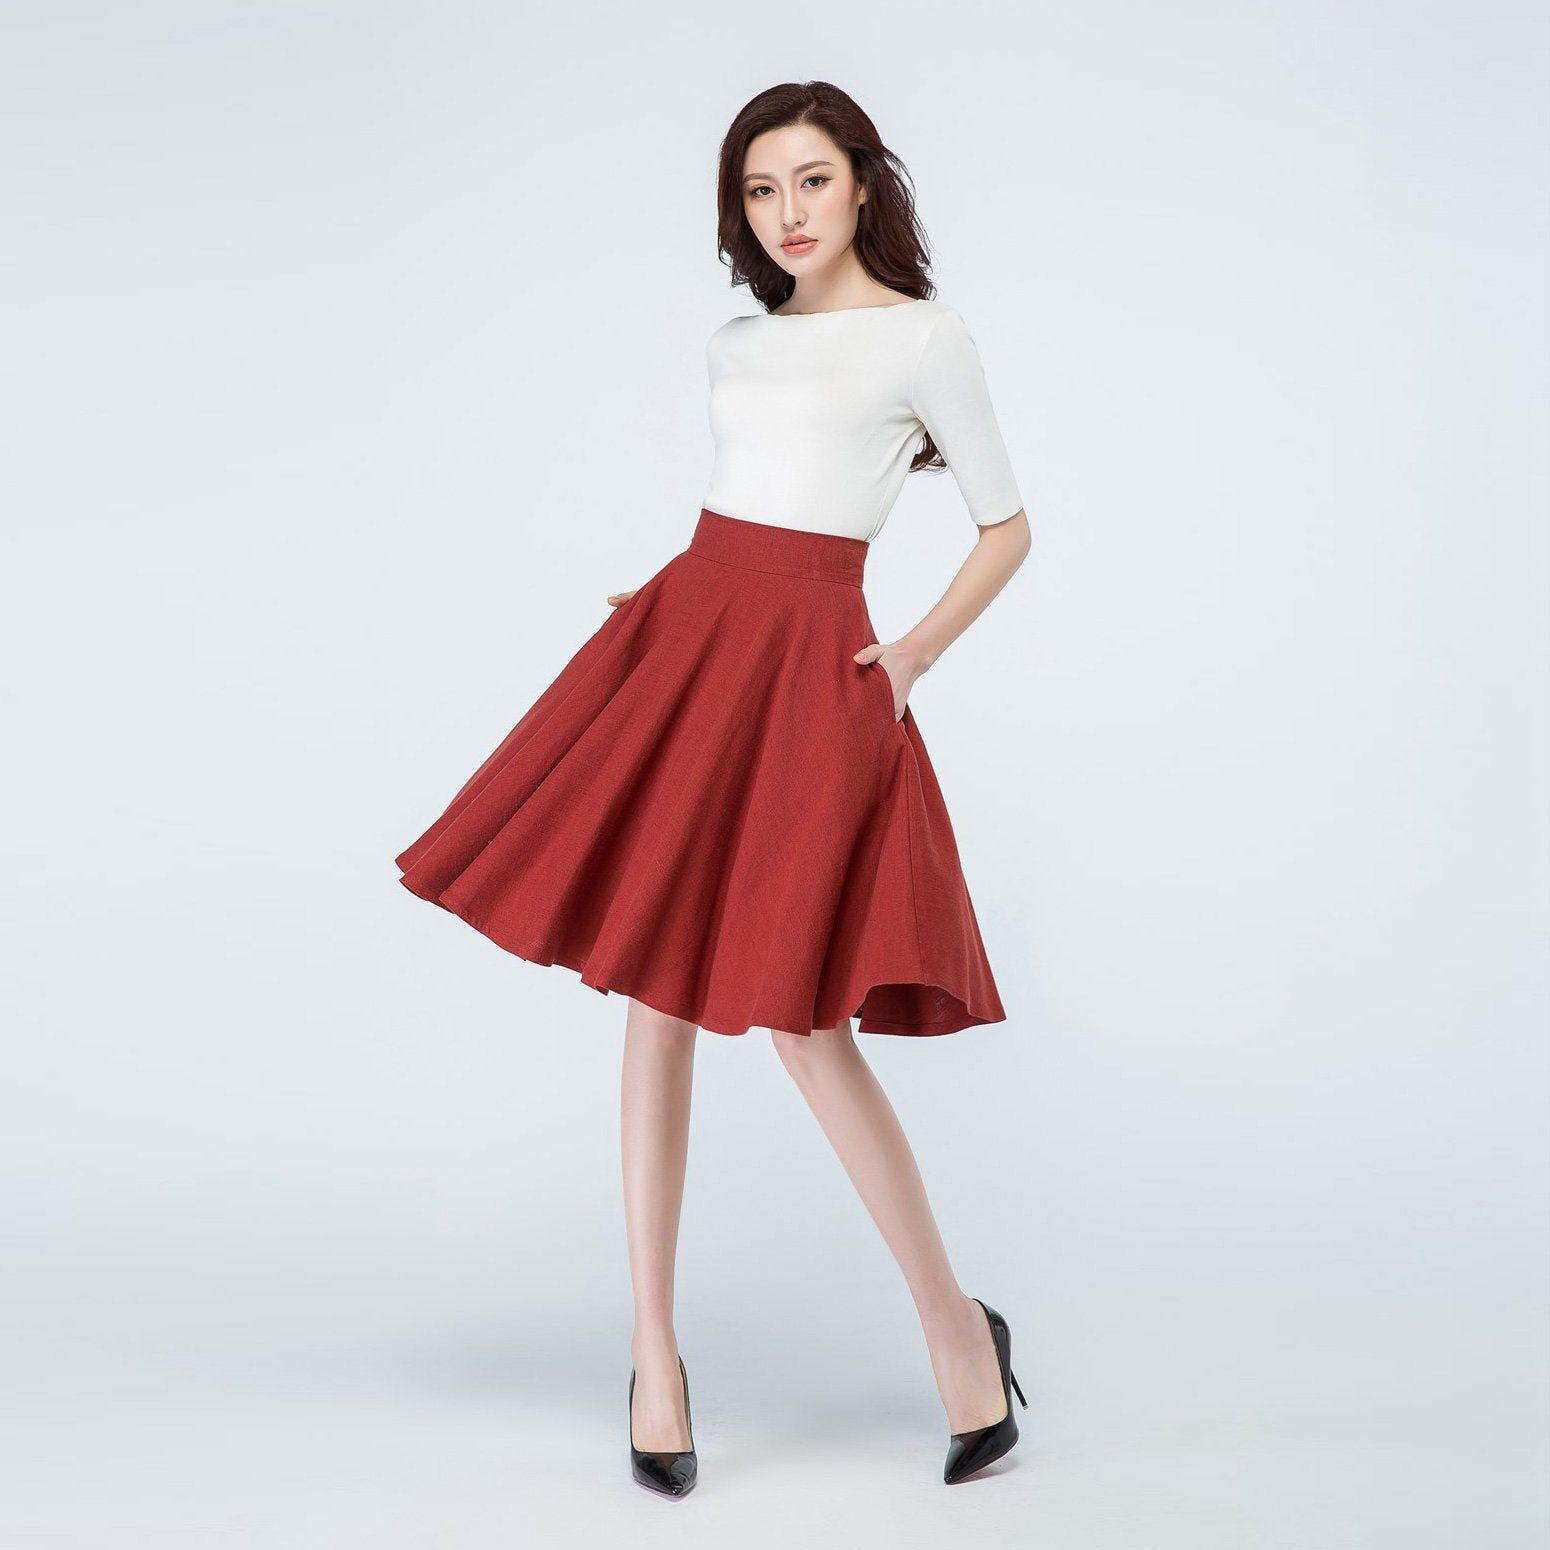 GIRLS SKATER SKIRT-SWING FLARE SKIRT RED  BLACK  GREY